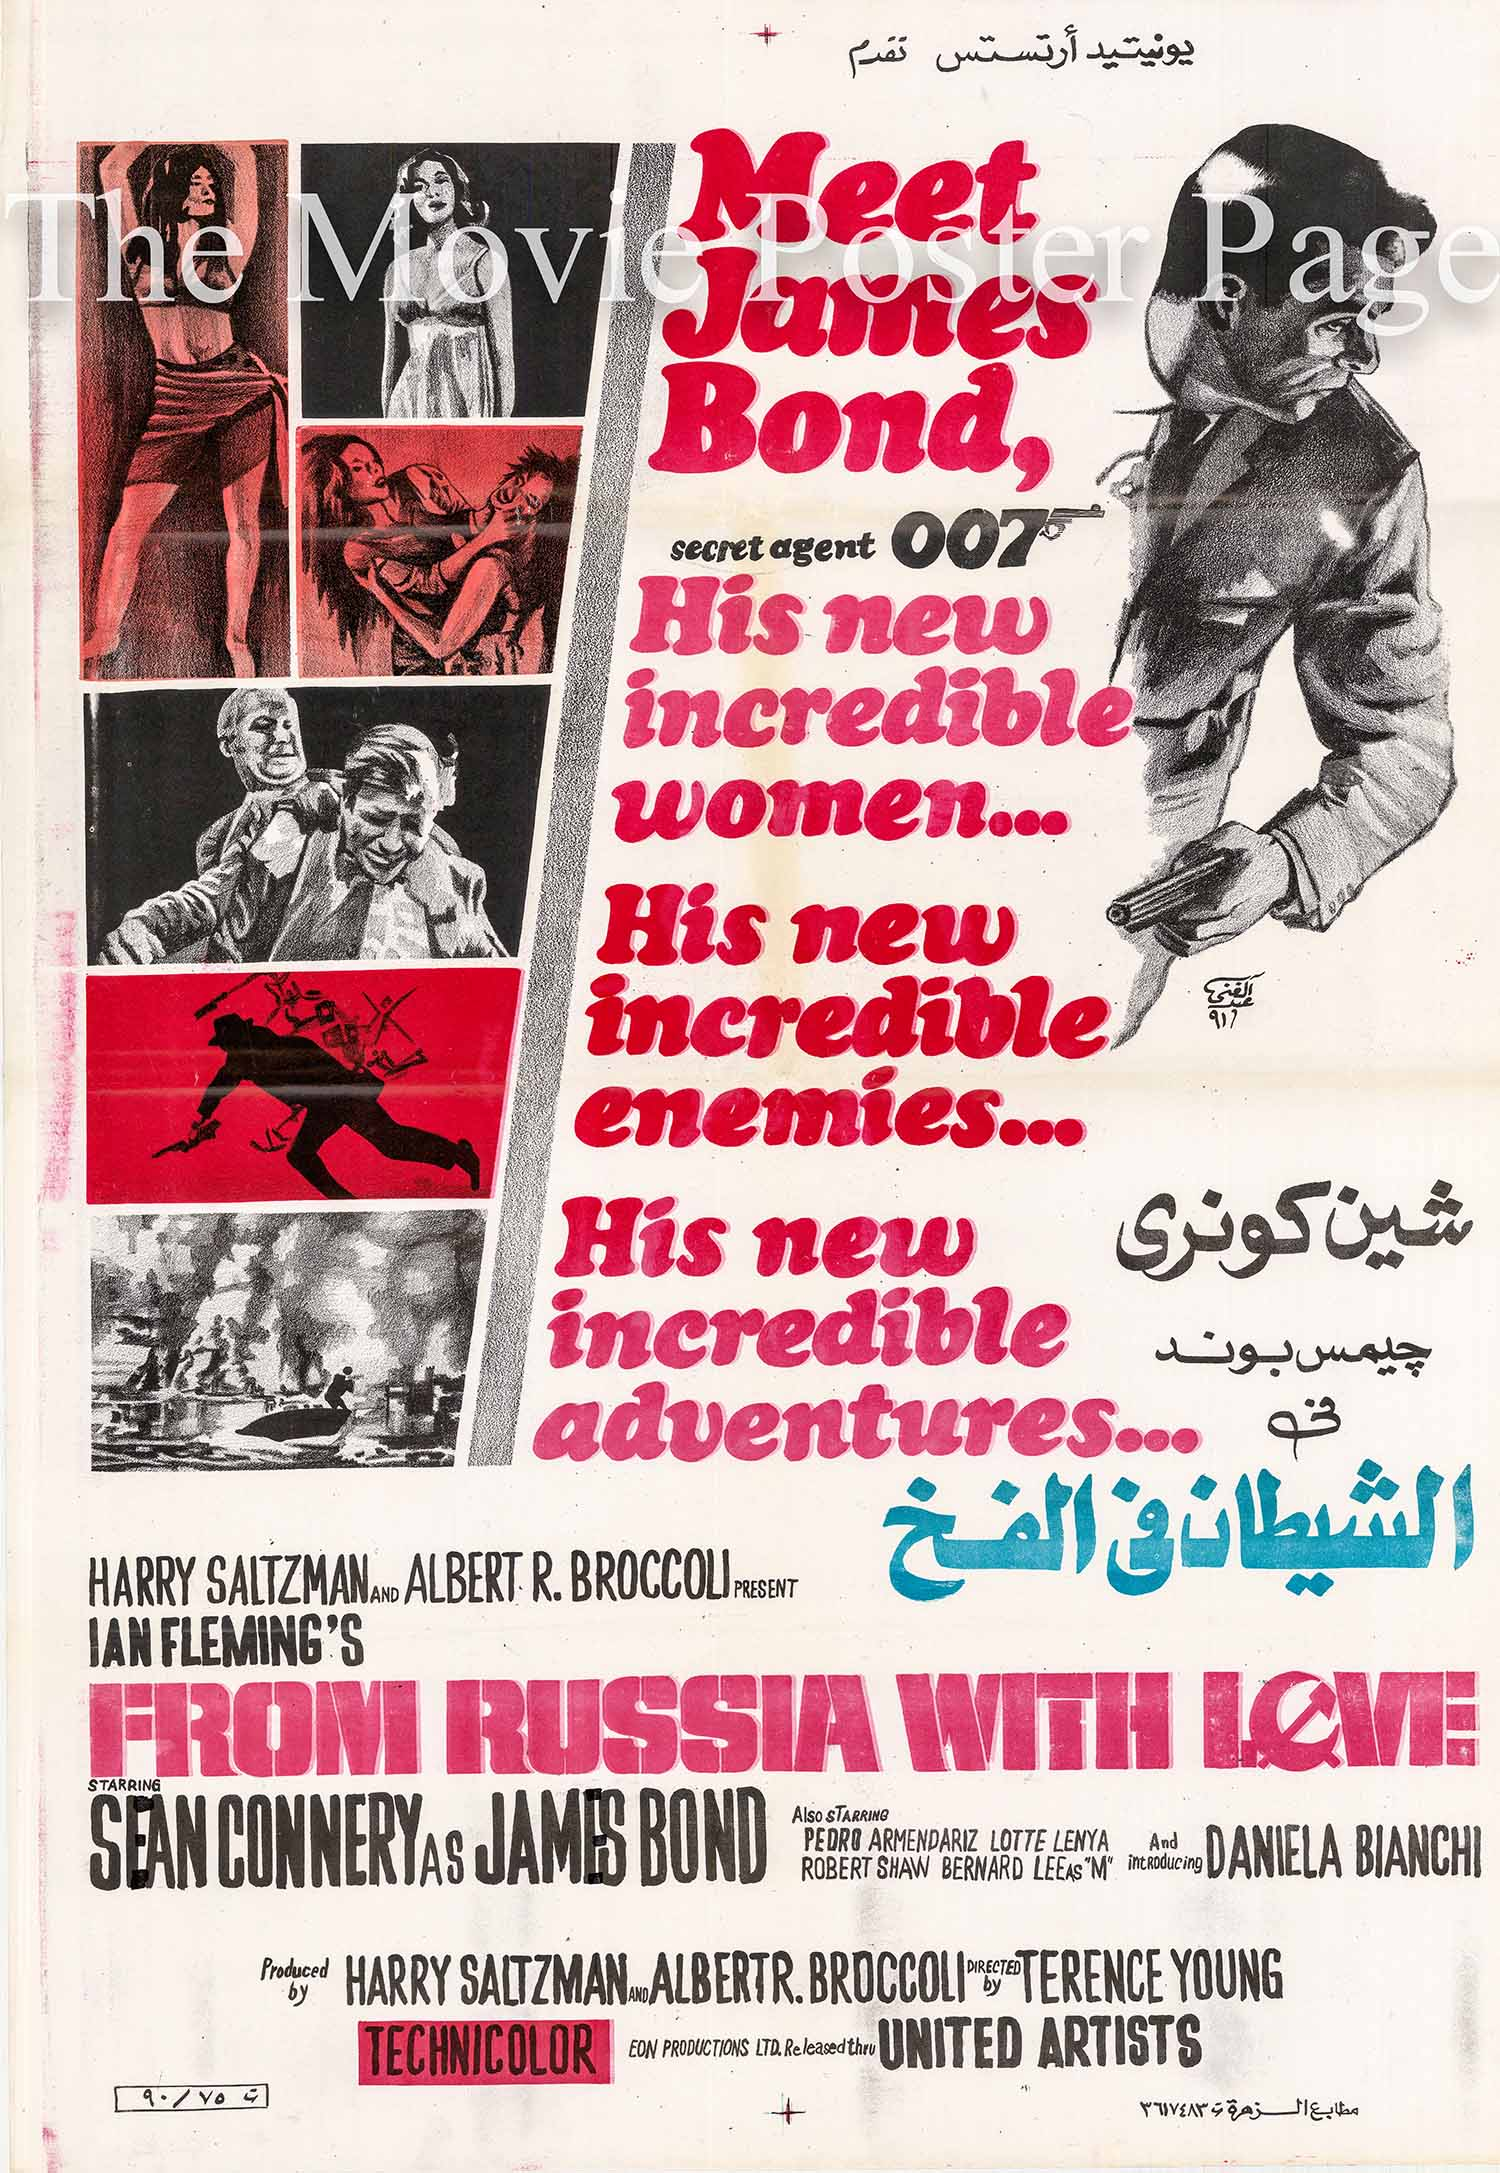 pictured is a 1990 Egyptian rereleas poster for the 1963 Terence Young Film From Russia with Love starring Sean Connery as James Bond.